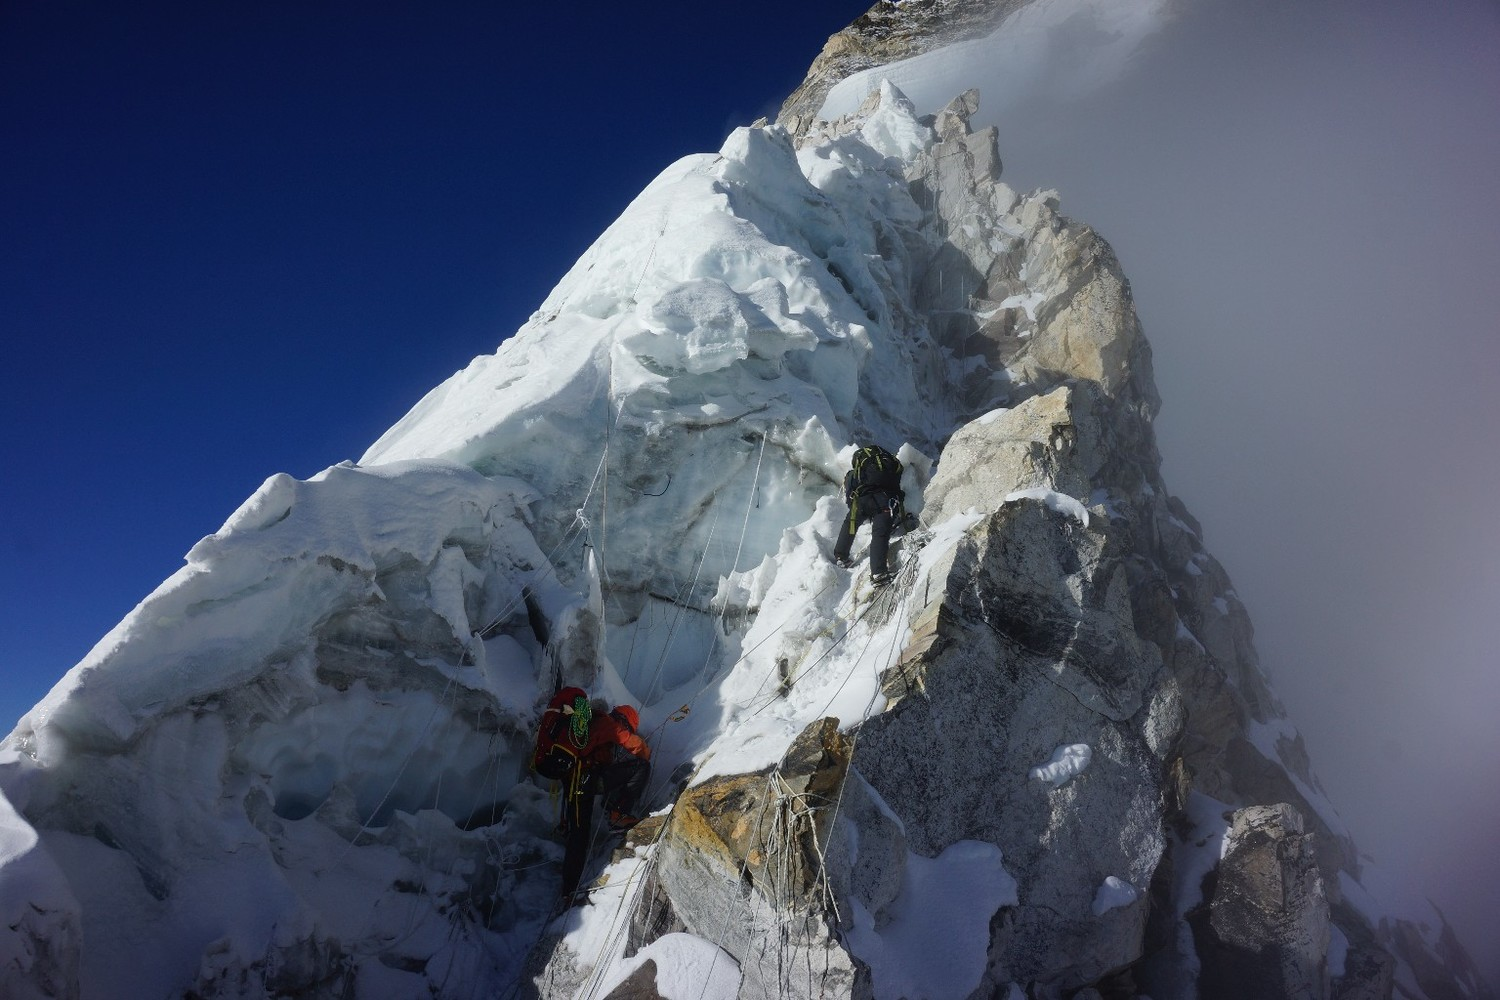 Ama Dablam May 8 2016 : the mushroom ridge ; Jean-Baptiste Renié